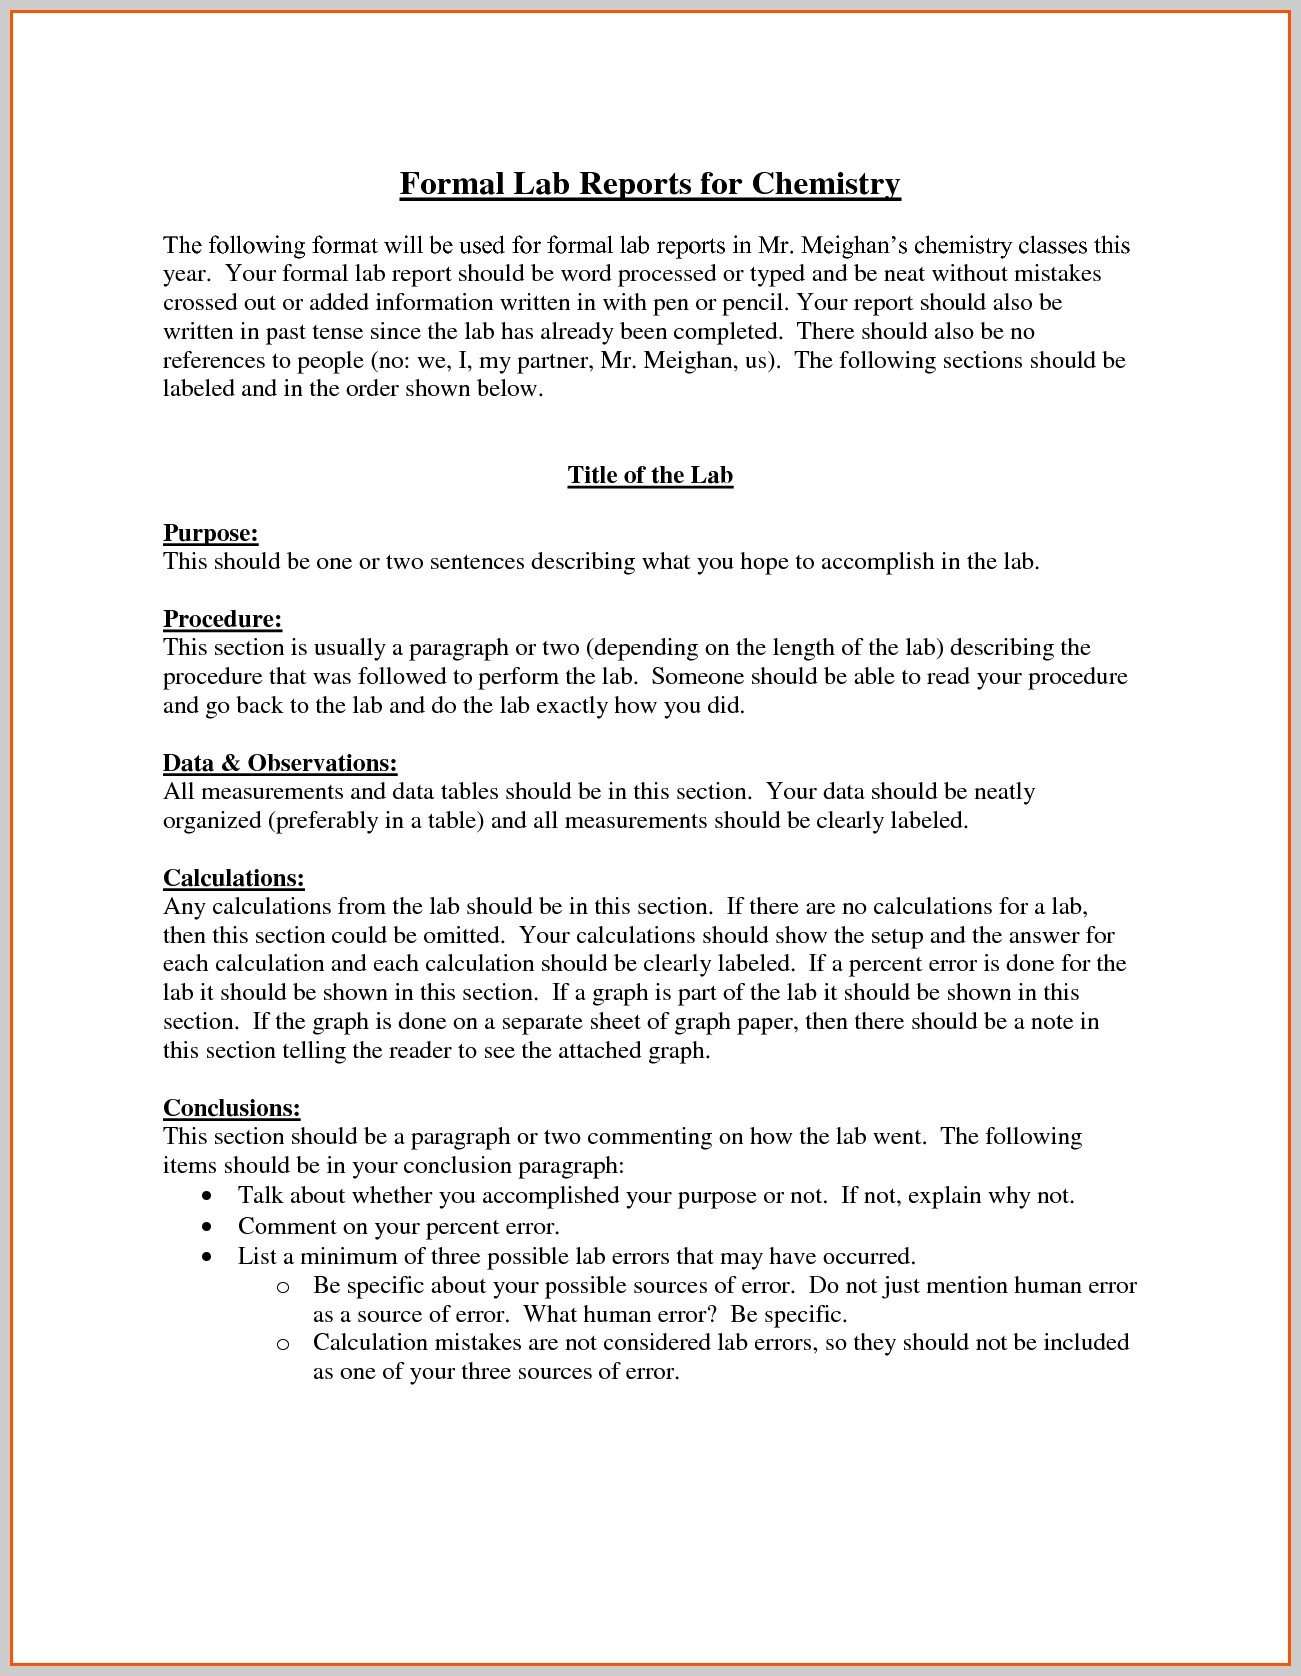 Chemistry Lab Report Template | fieltro.net